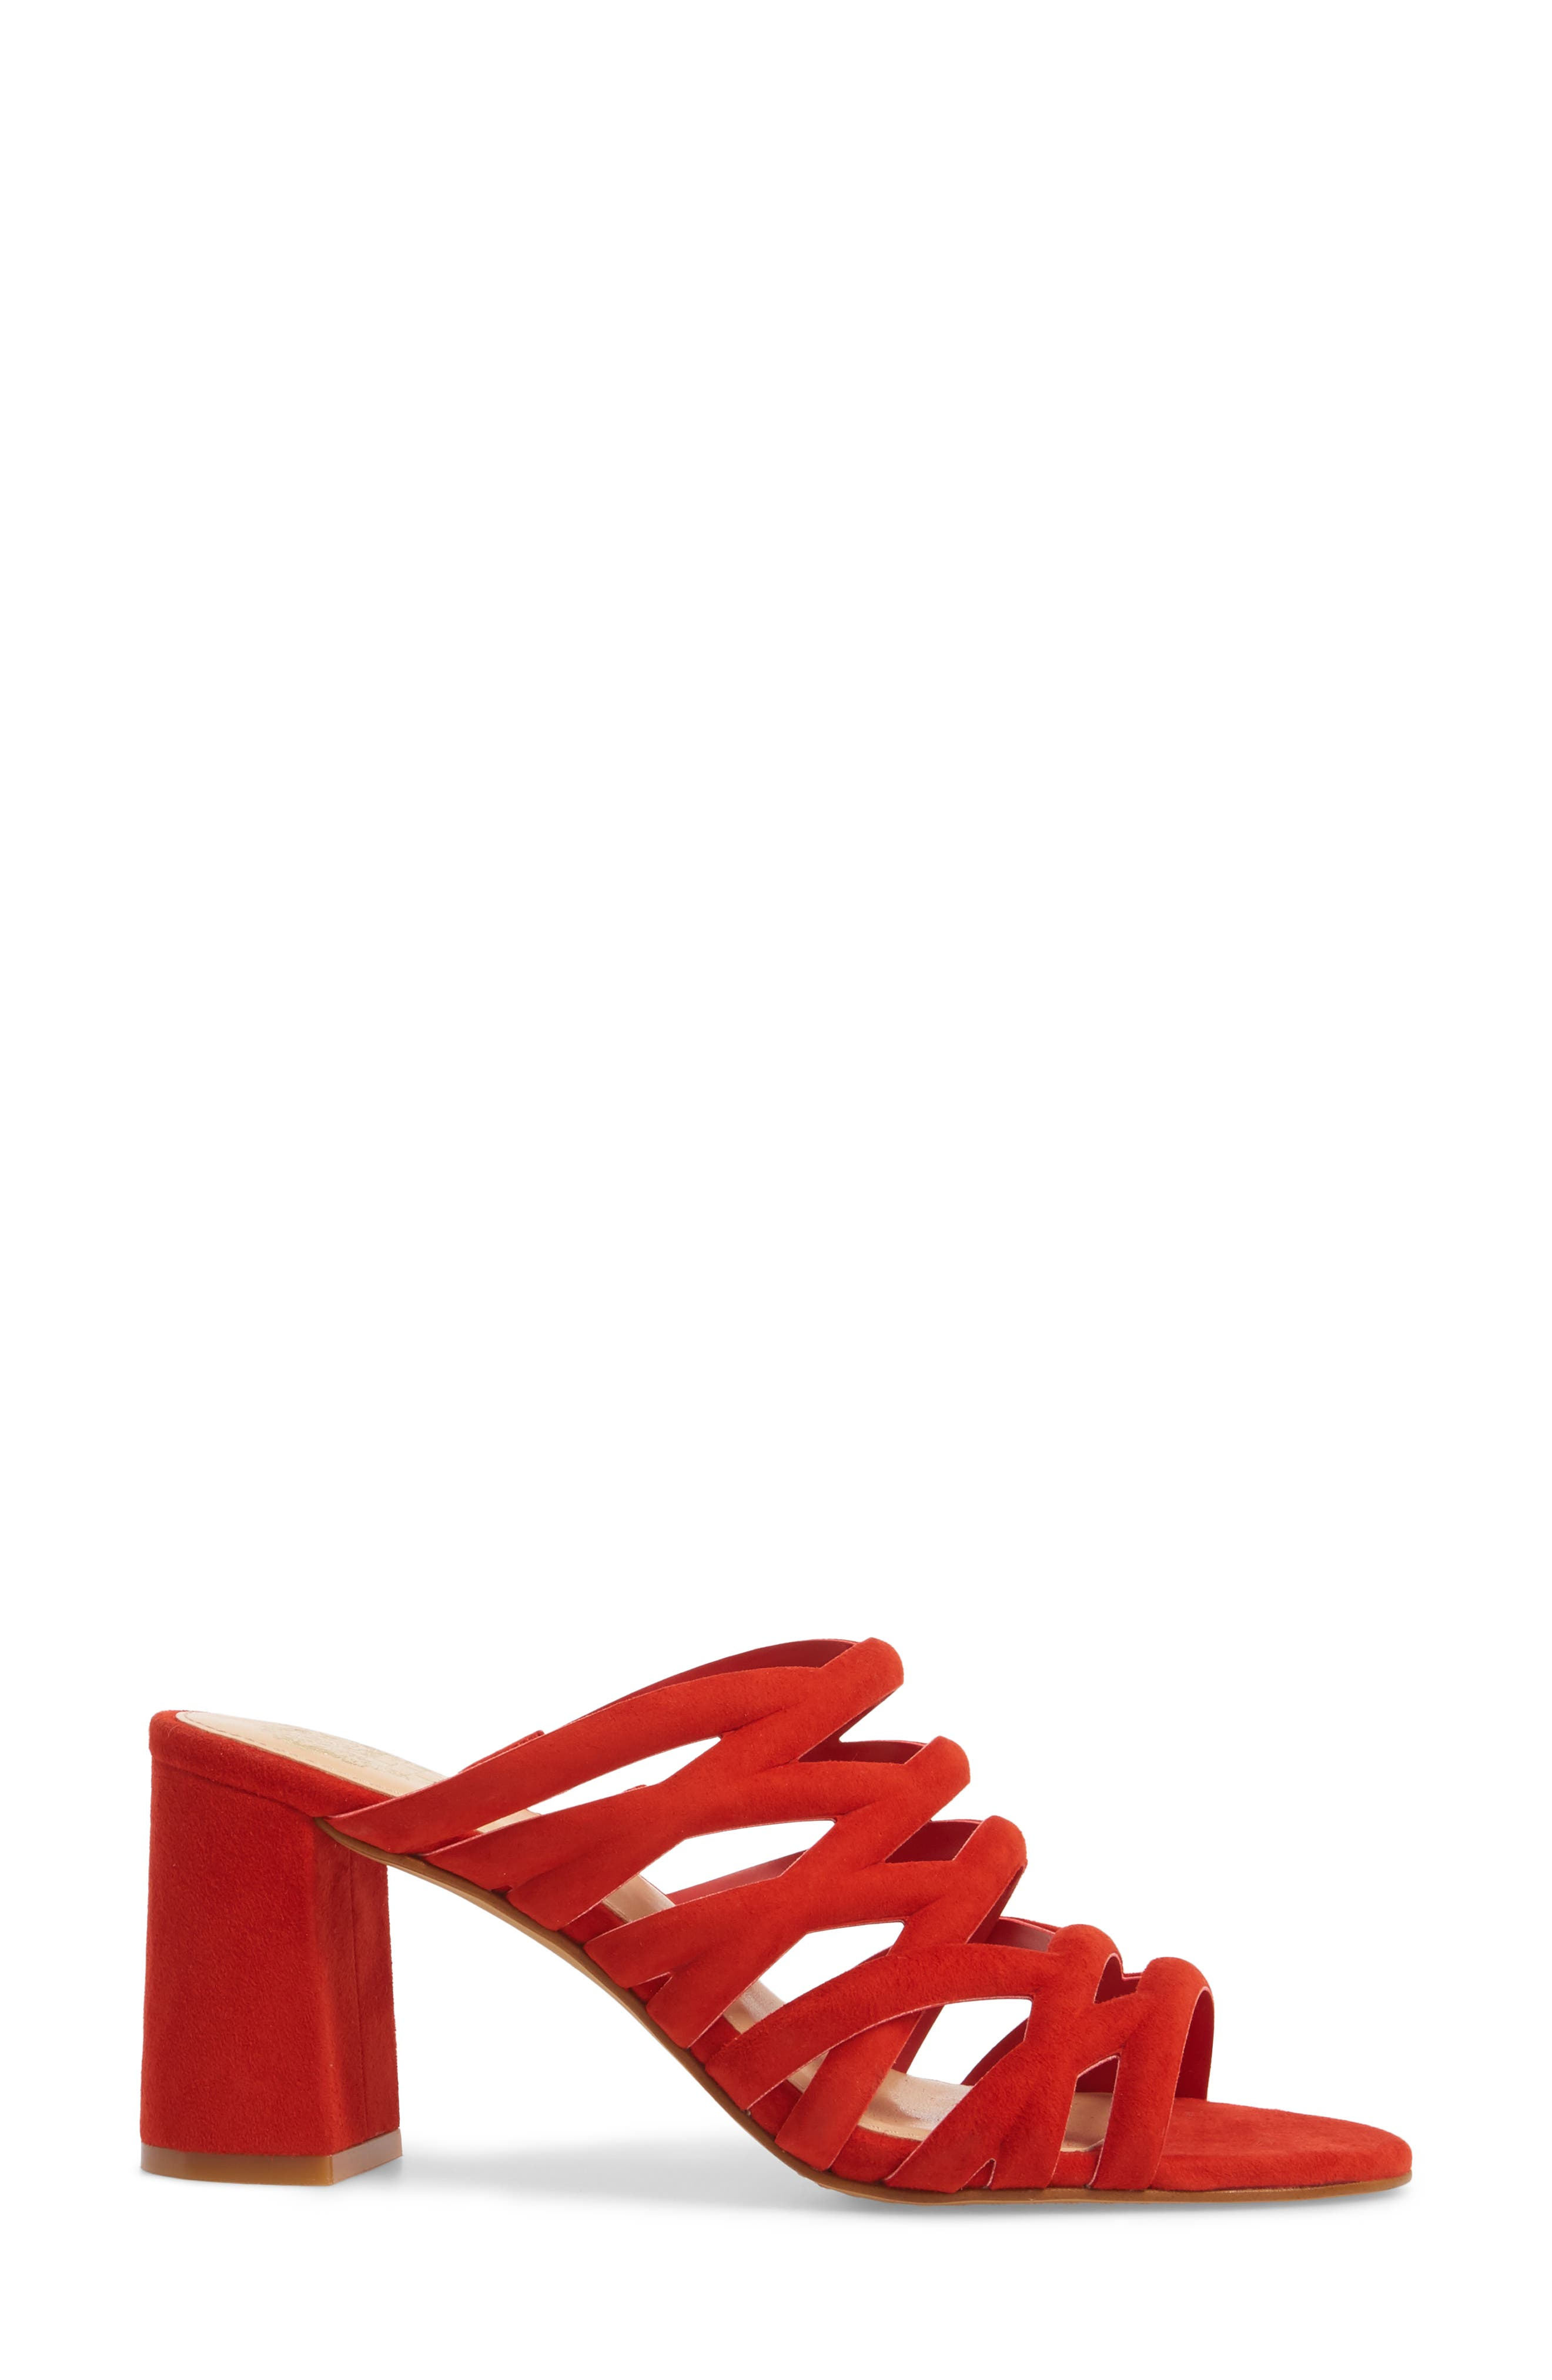 Raveana Cage Mule,                             Alternate thumbnail 3, color,                             Red Hot Rio Suede